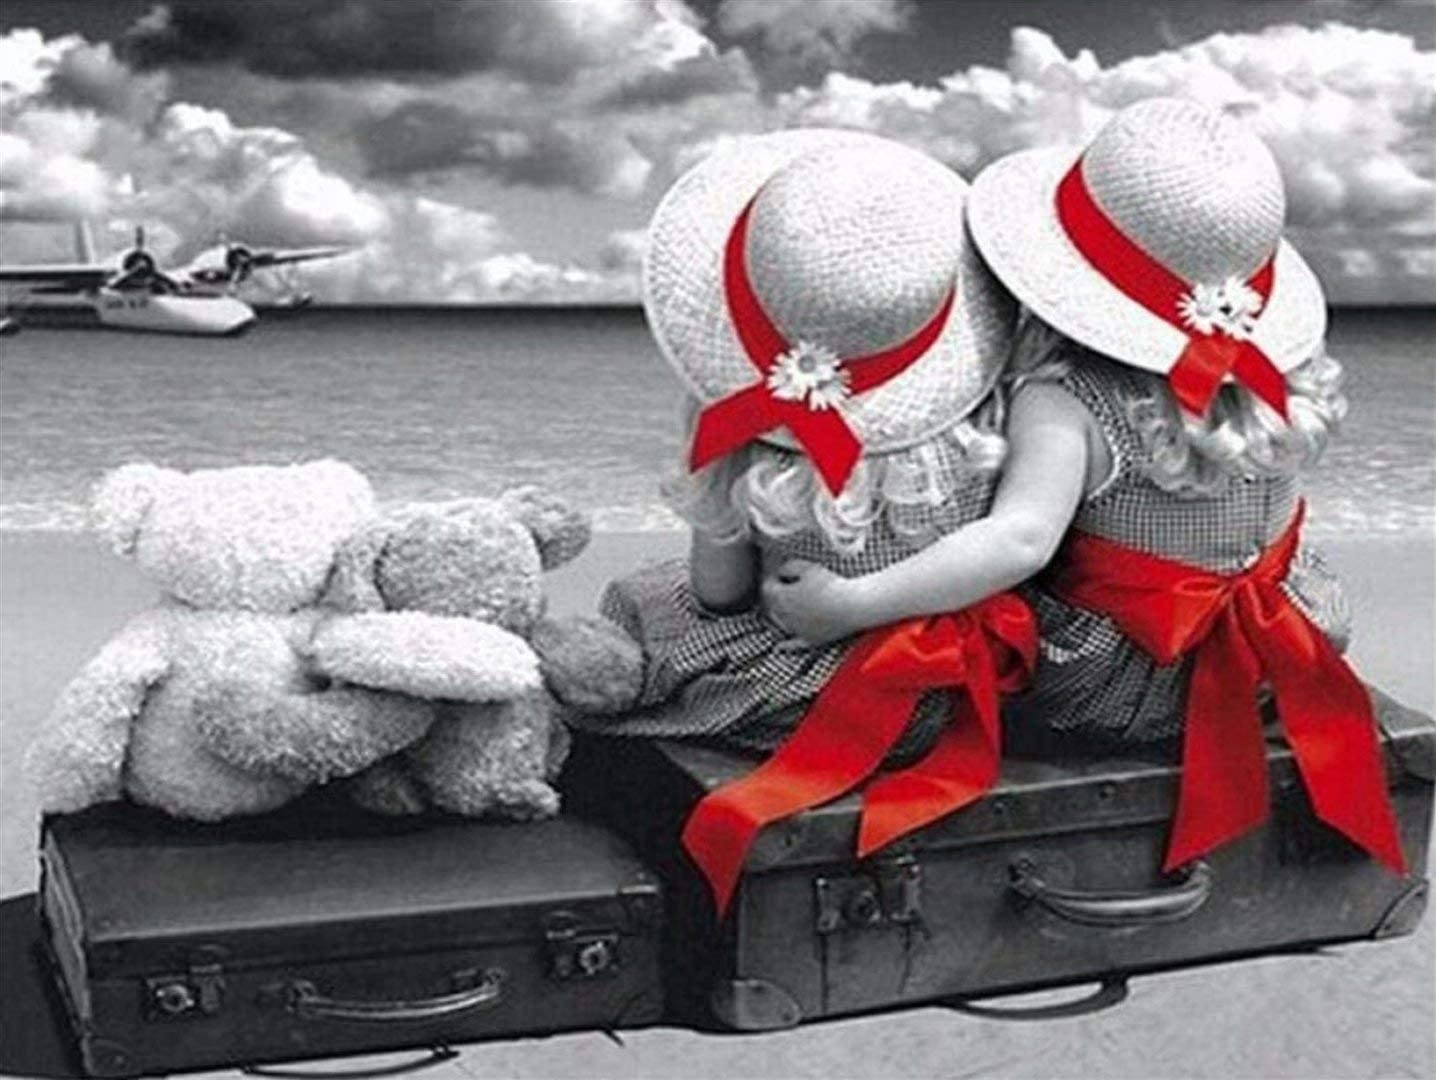 Classic Jigsaw At the price Girl and Bear Watching Pieces The Max 61% OFF sea 5000 Puzzle